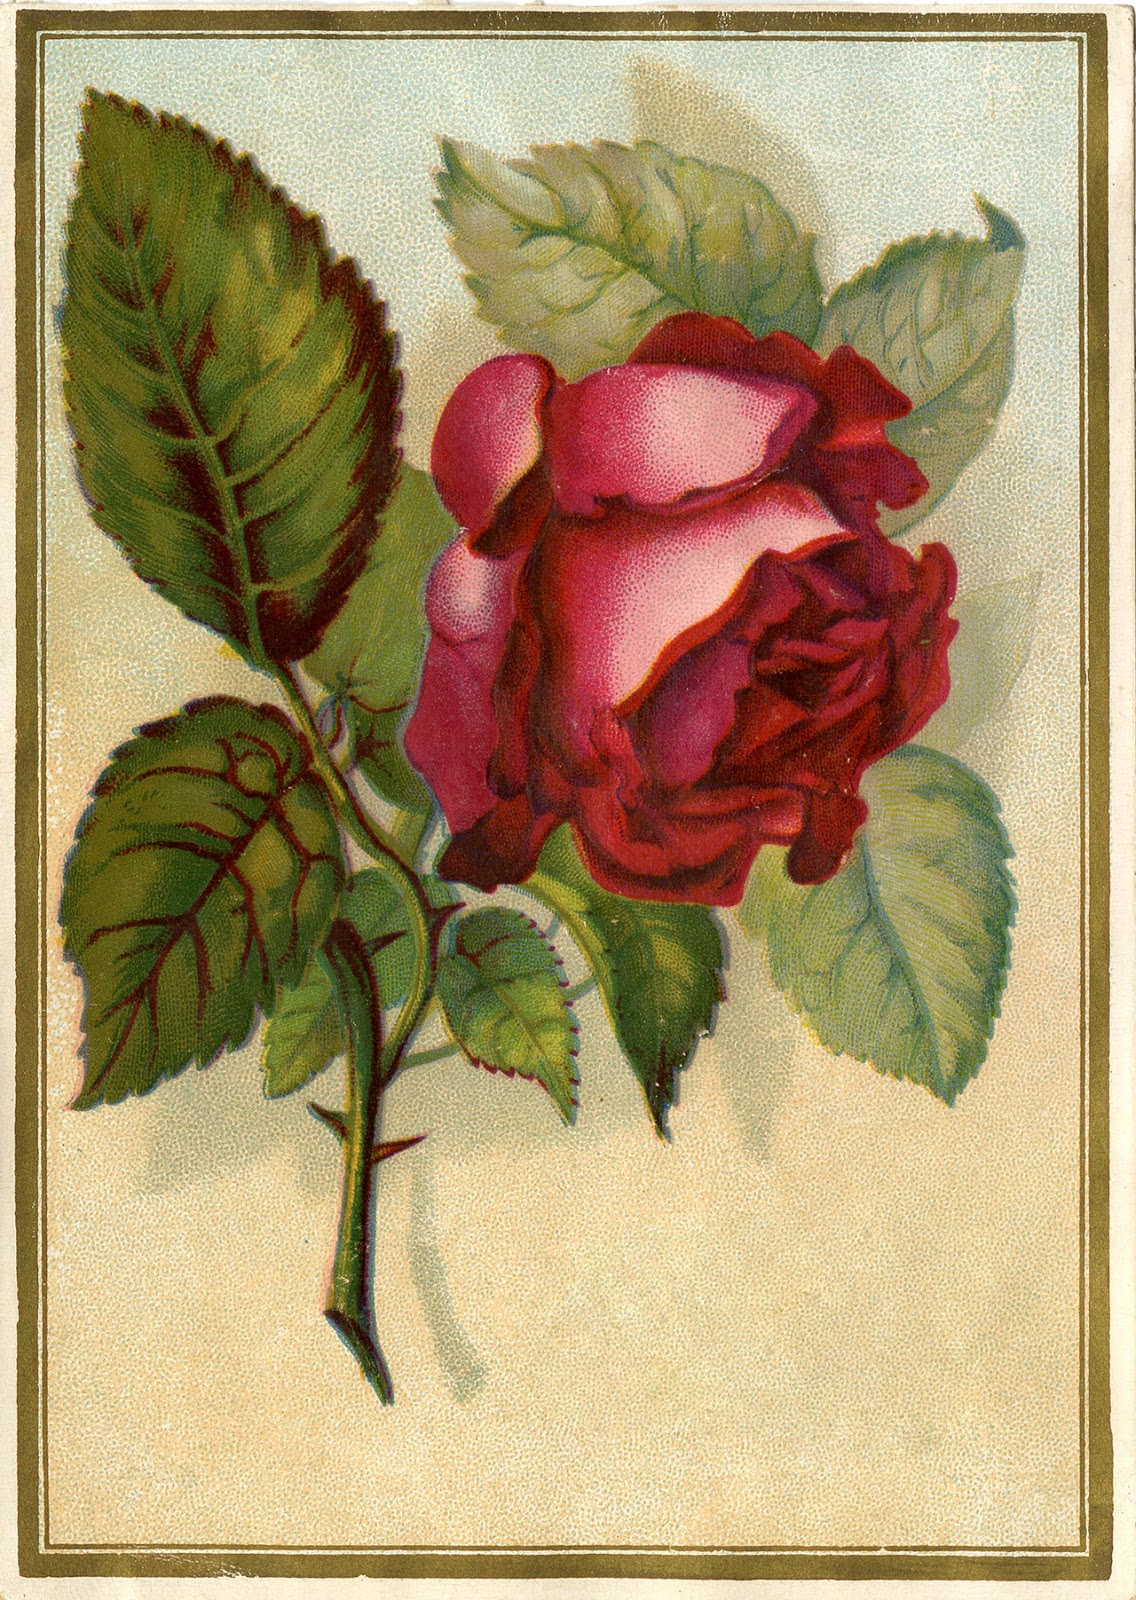 Victorian Images   Beautiful Red Rose   The Graphics Fairy 1136x1600